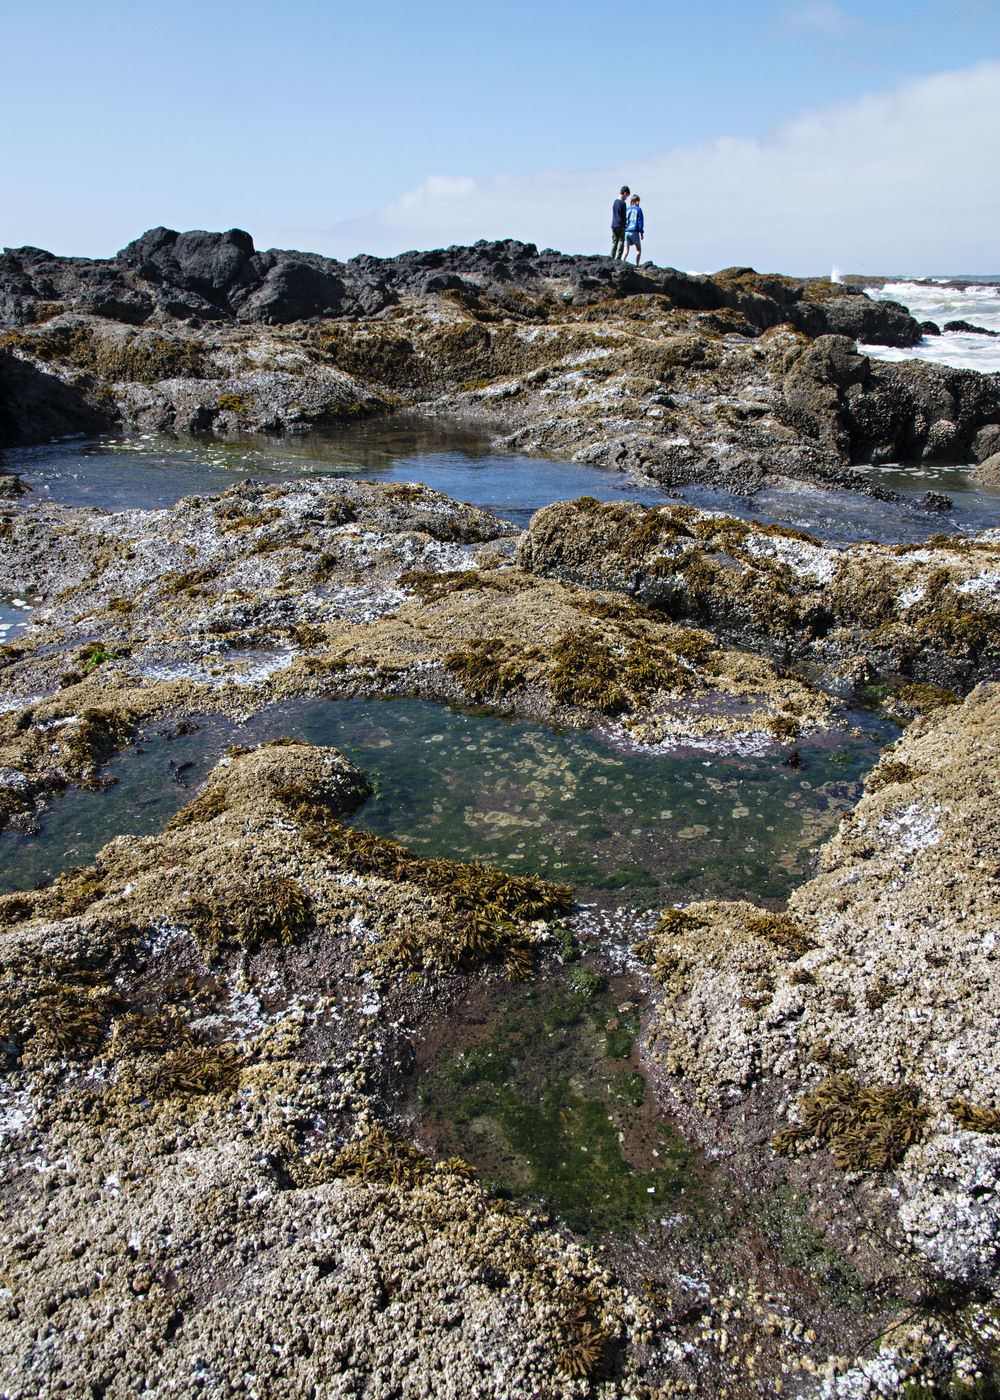 Samantha and Parker play in the tide pools.  Nikon D800, Nikkor 24-200mm lens @ 24mm, ISO 160, f11, 1/160 sec.